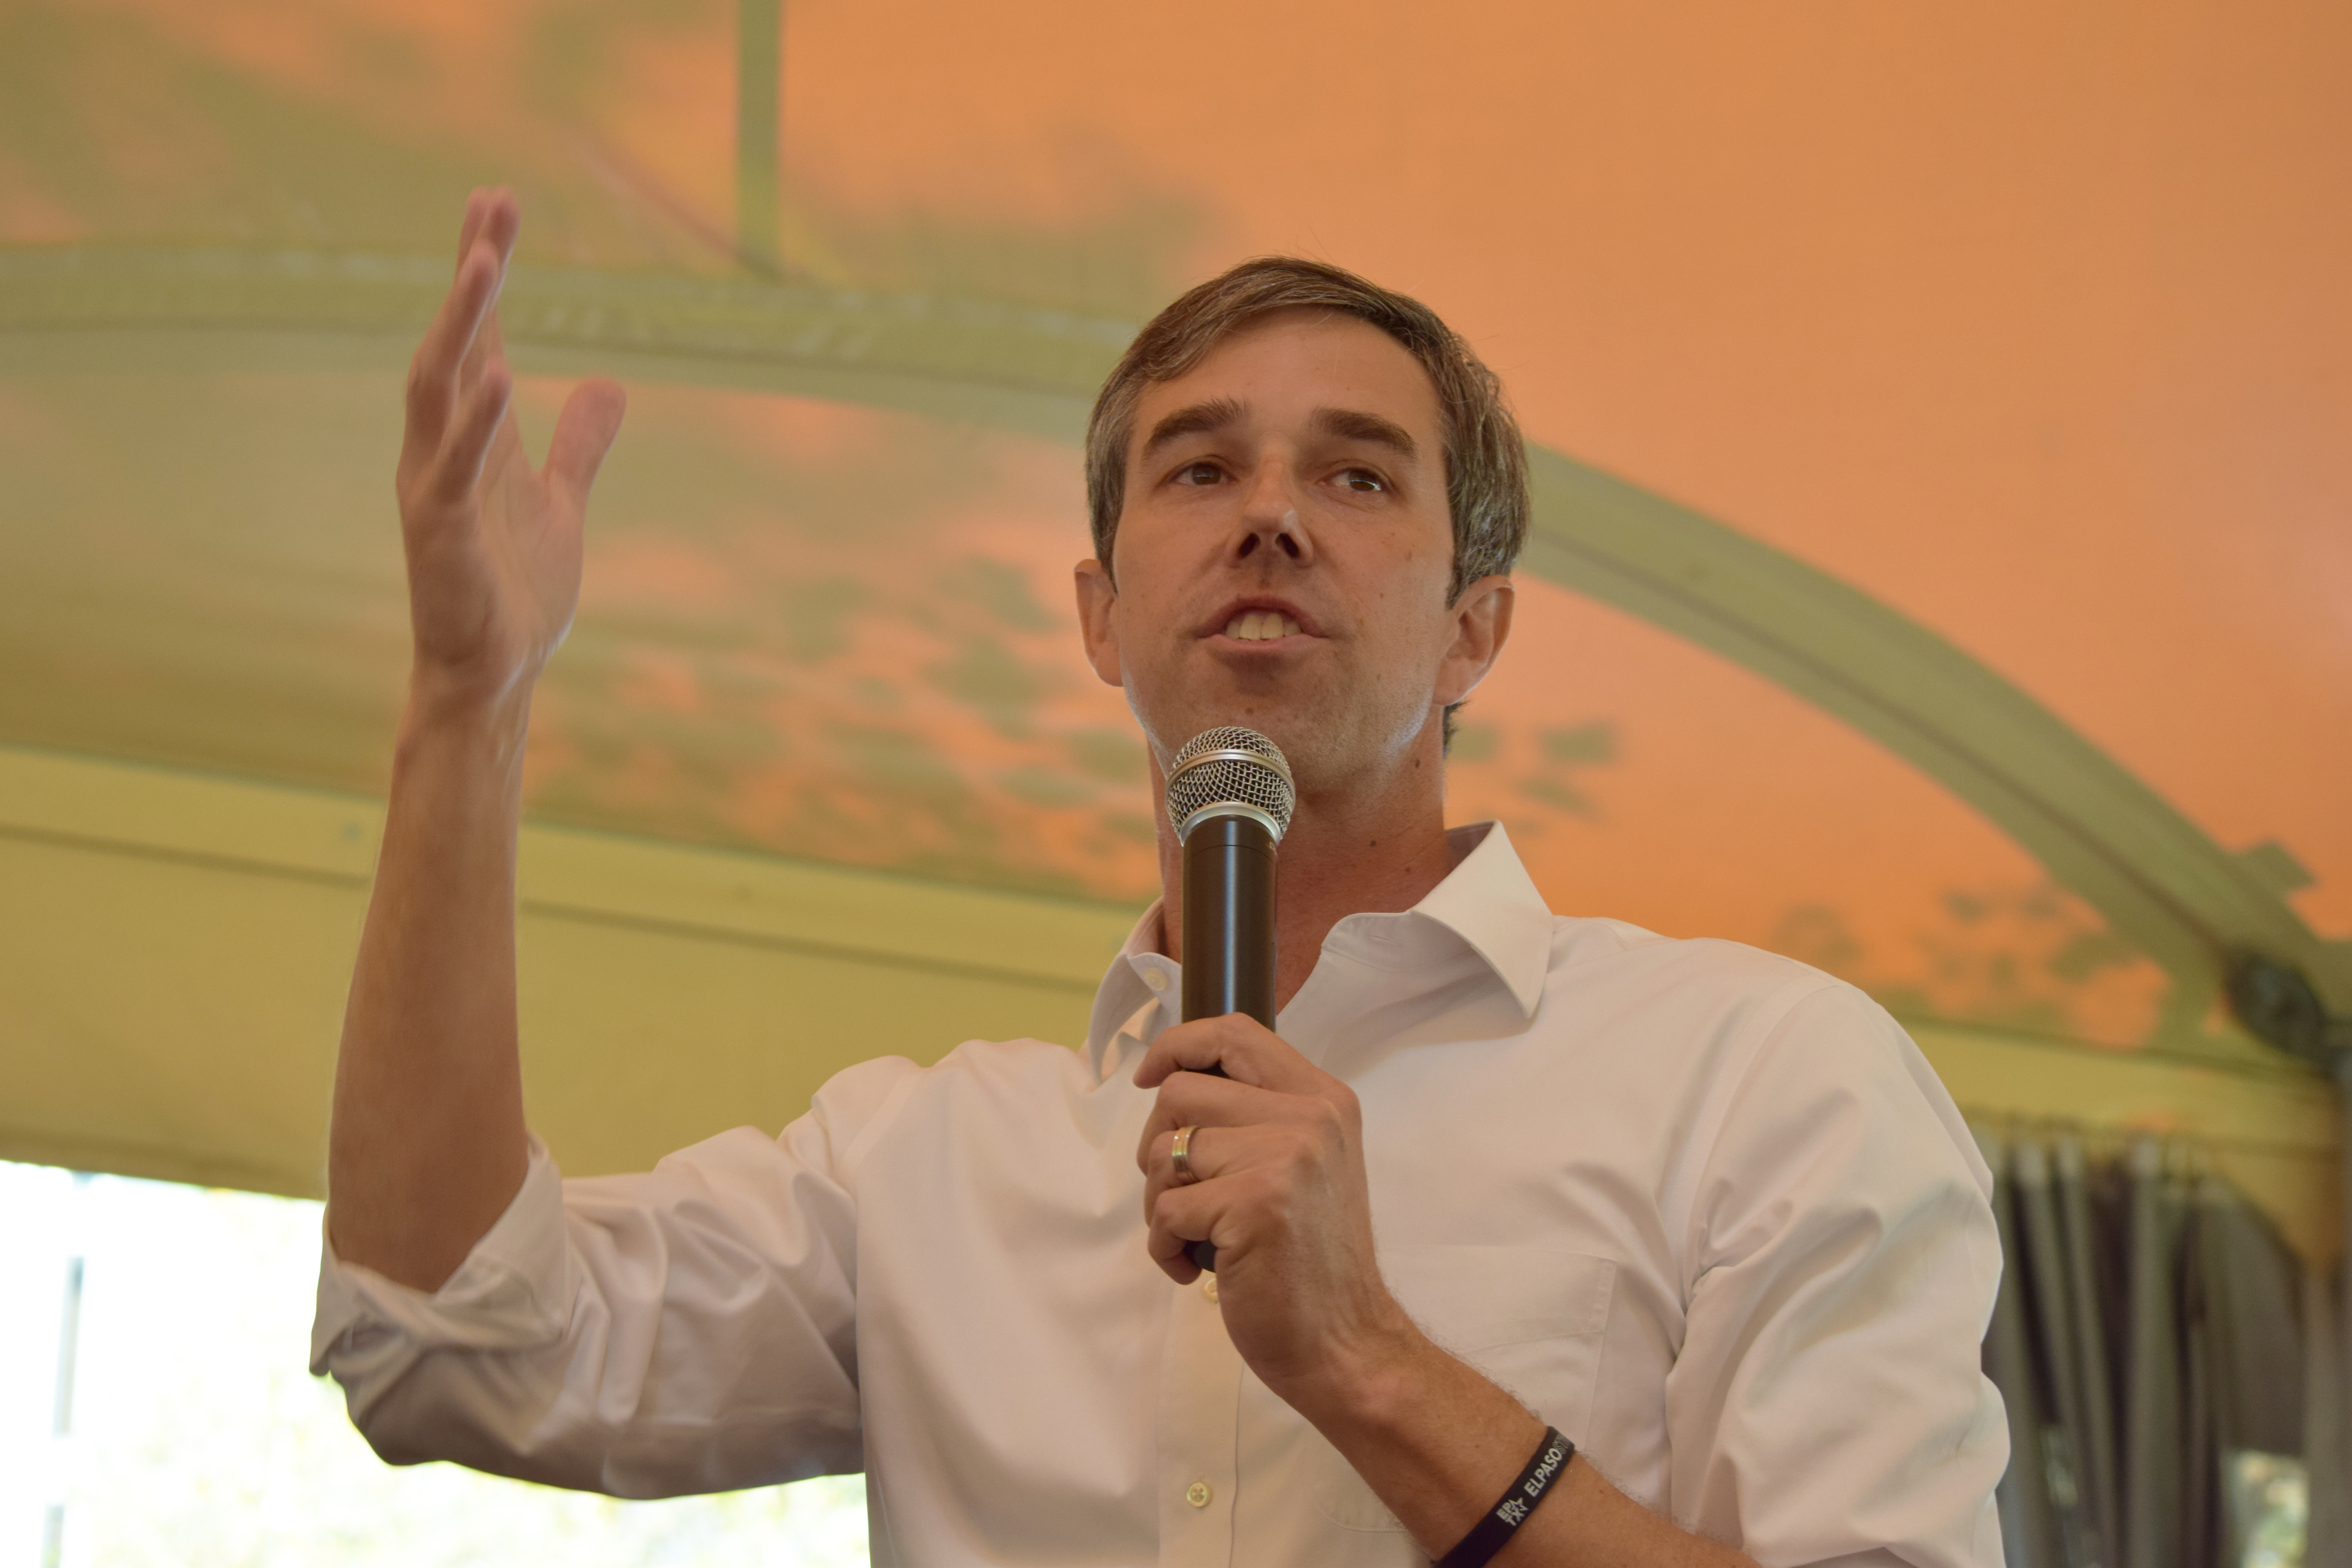 Beto O'Rourke, a former Texas Congressman, spoke to a crowd this past Wednesday in Oakland's Schenley Plaza tent.